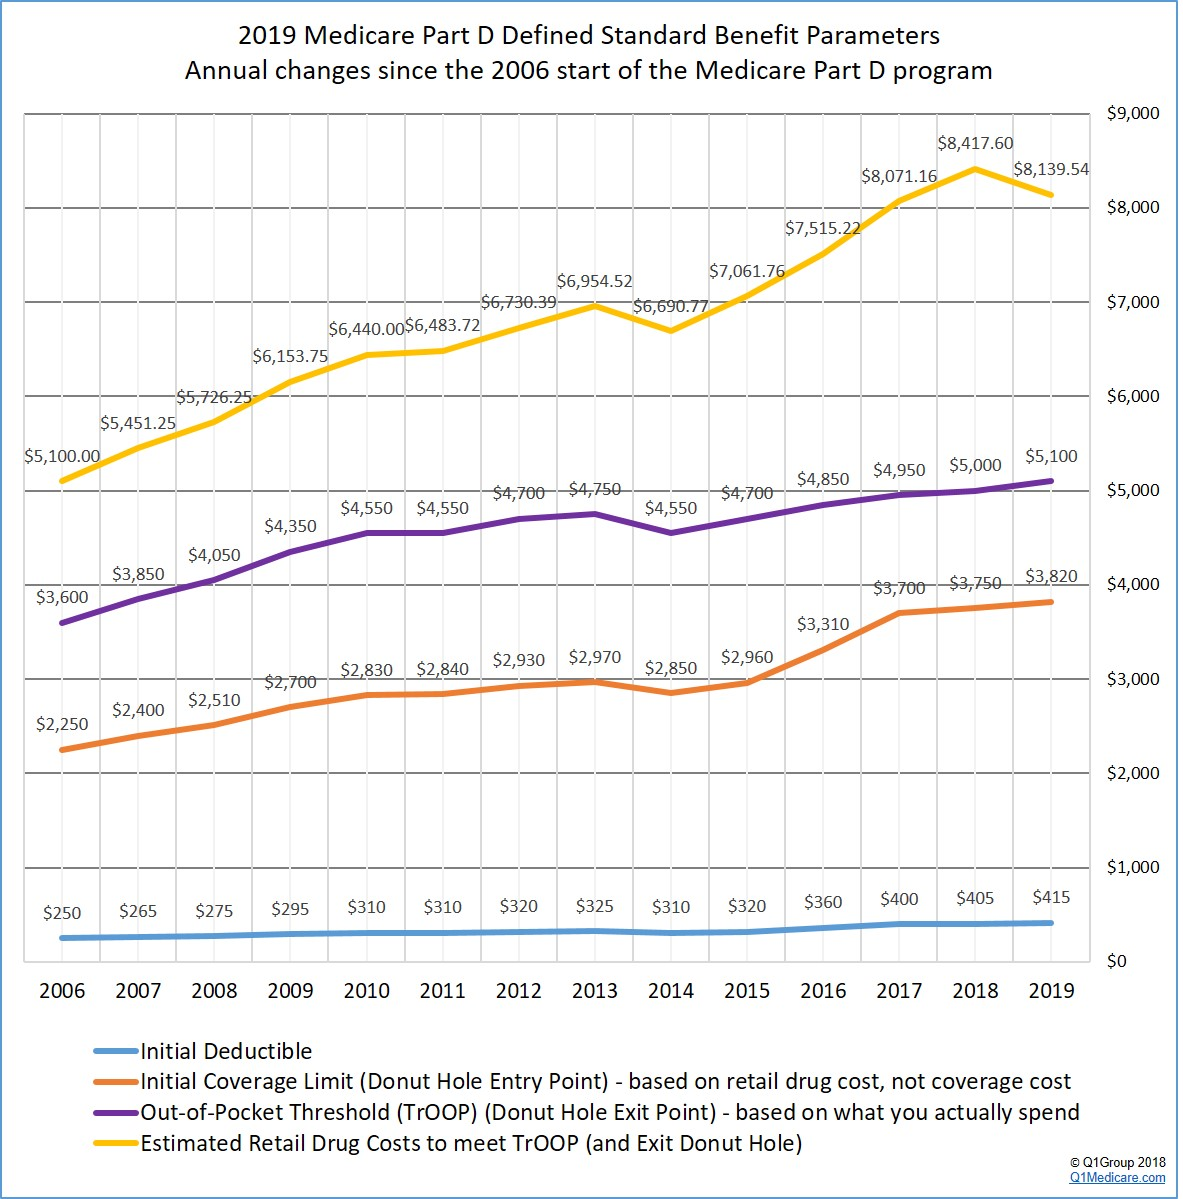 2019 Final Medicare Part D Defined Standard Benefit Parameters Annual Changes Since 2006